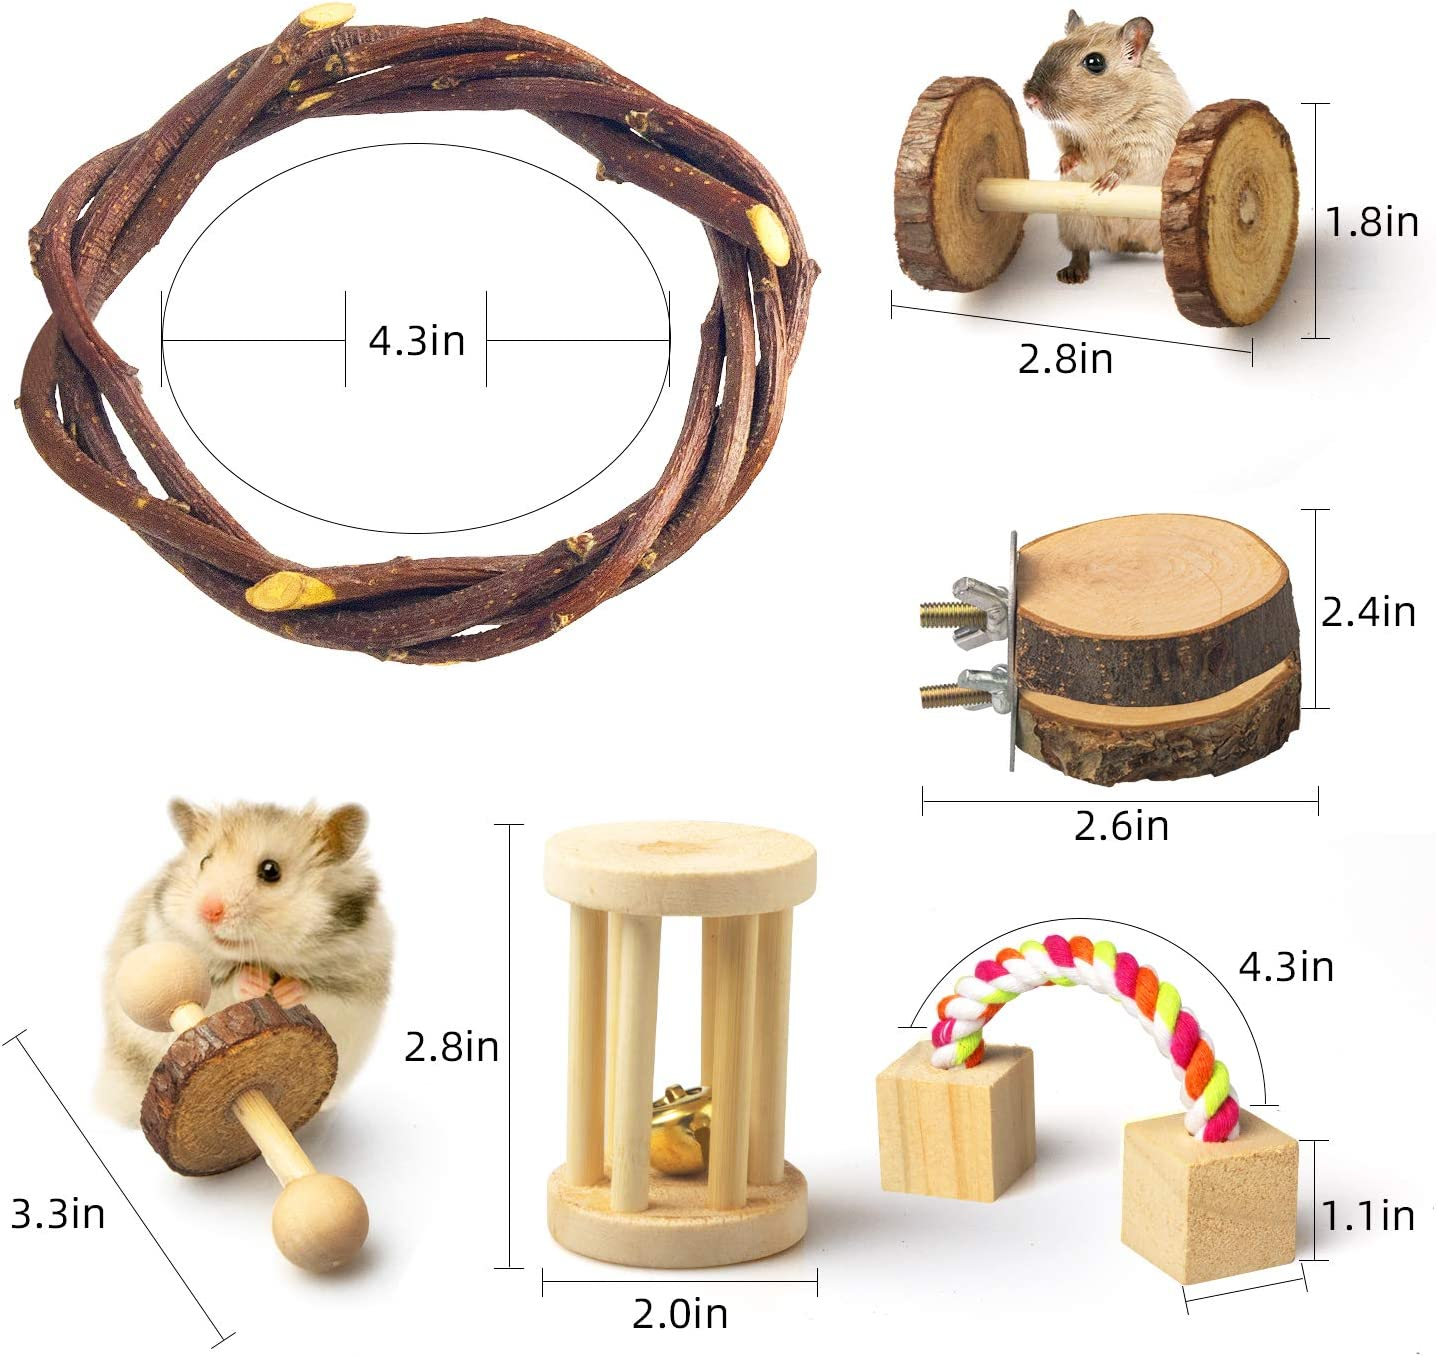 JOUEUYB Hamster Chew Toys Exercise Bell Roller Teeth Care Molar Toy Dumbells for Bunny Valentines Day Gifts 12 Pack Natural Wooden Pine Guinea Pigs Rats Chinchillas Toys Accessories